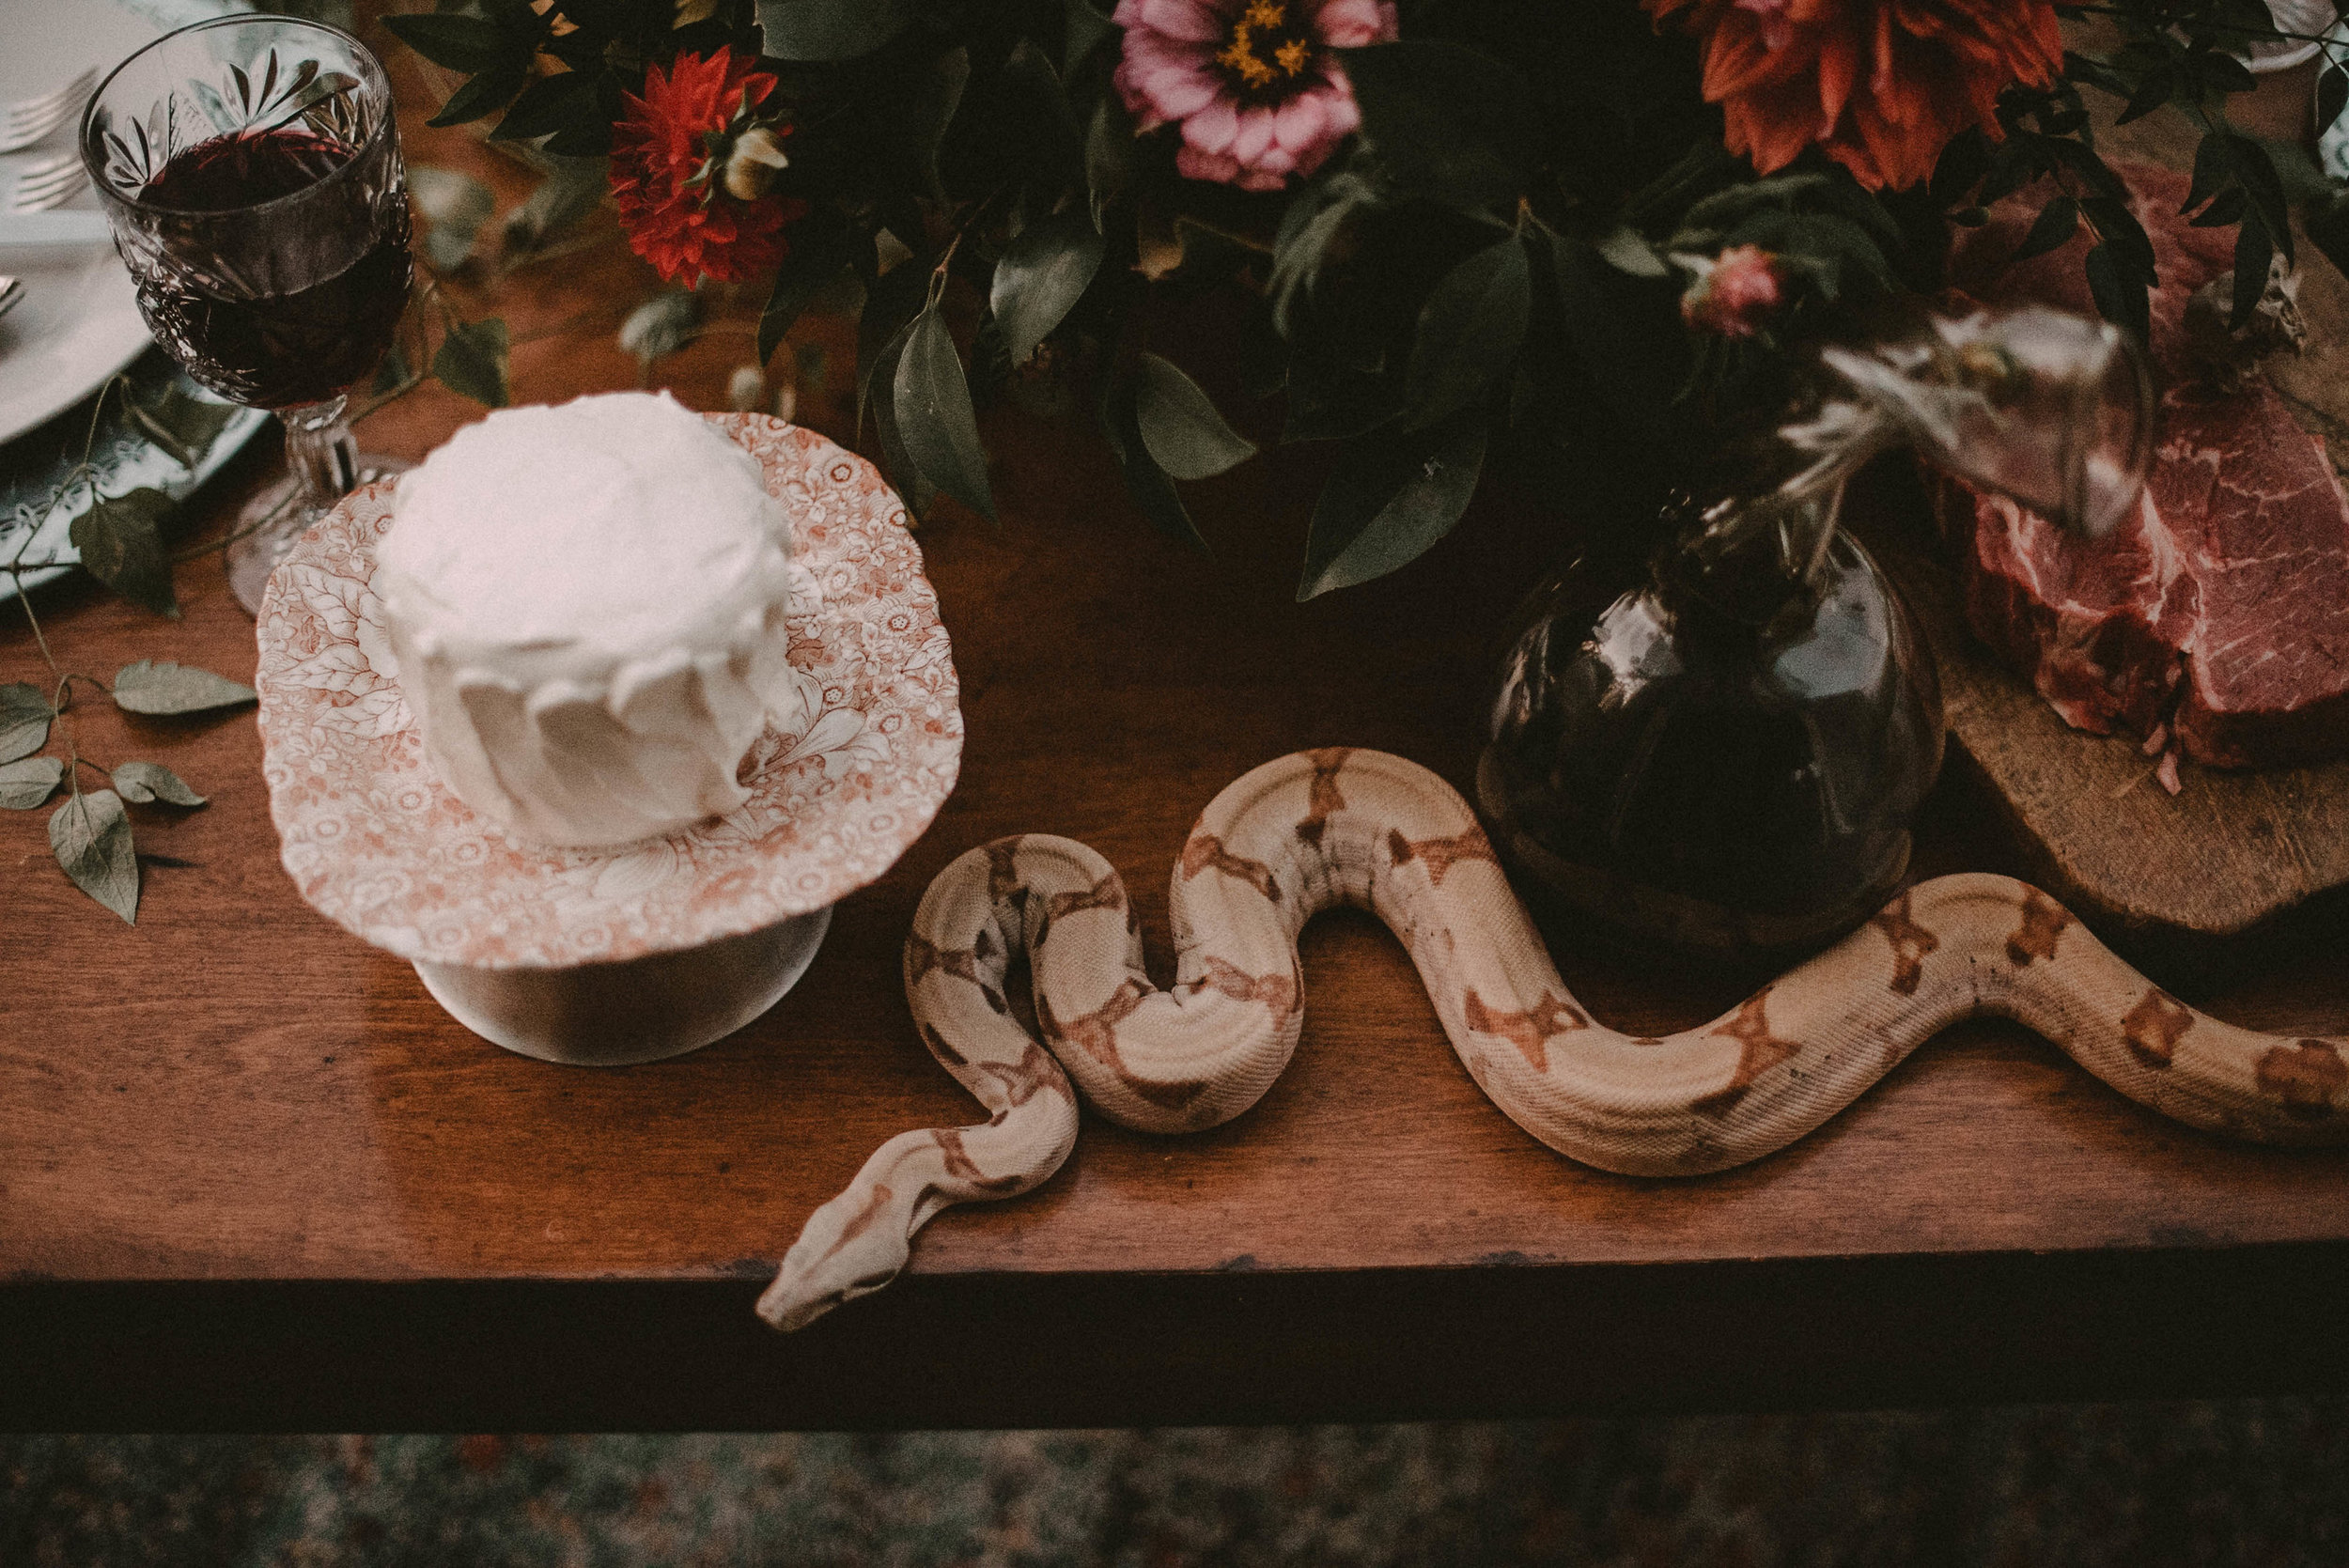 Snake with a wedding cake